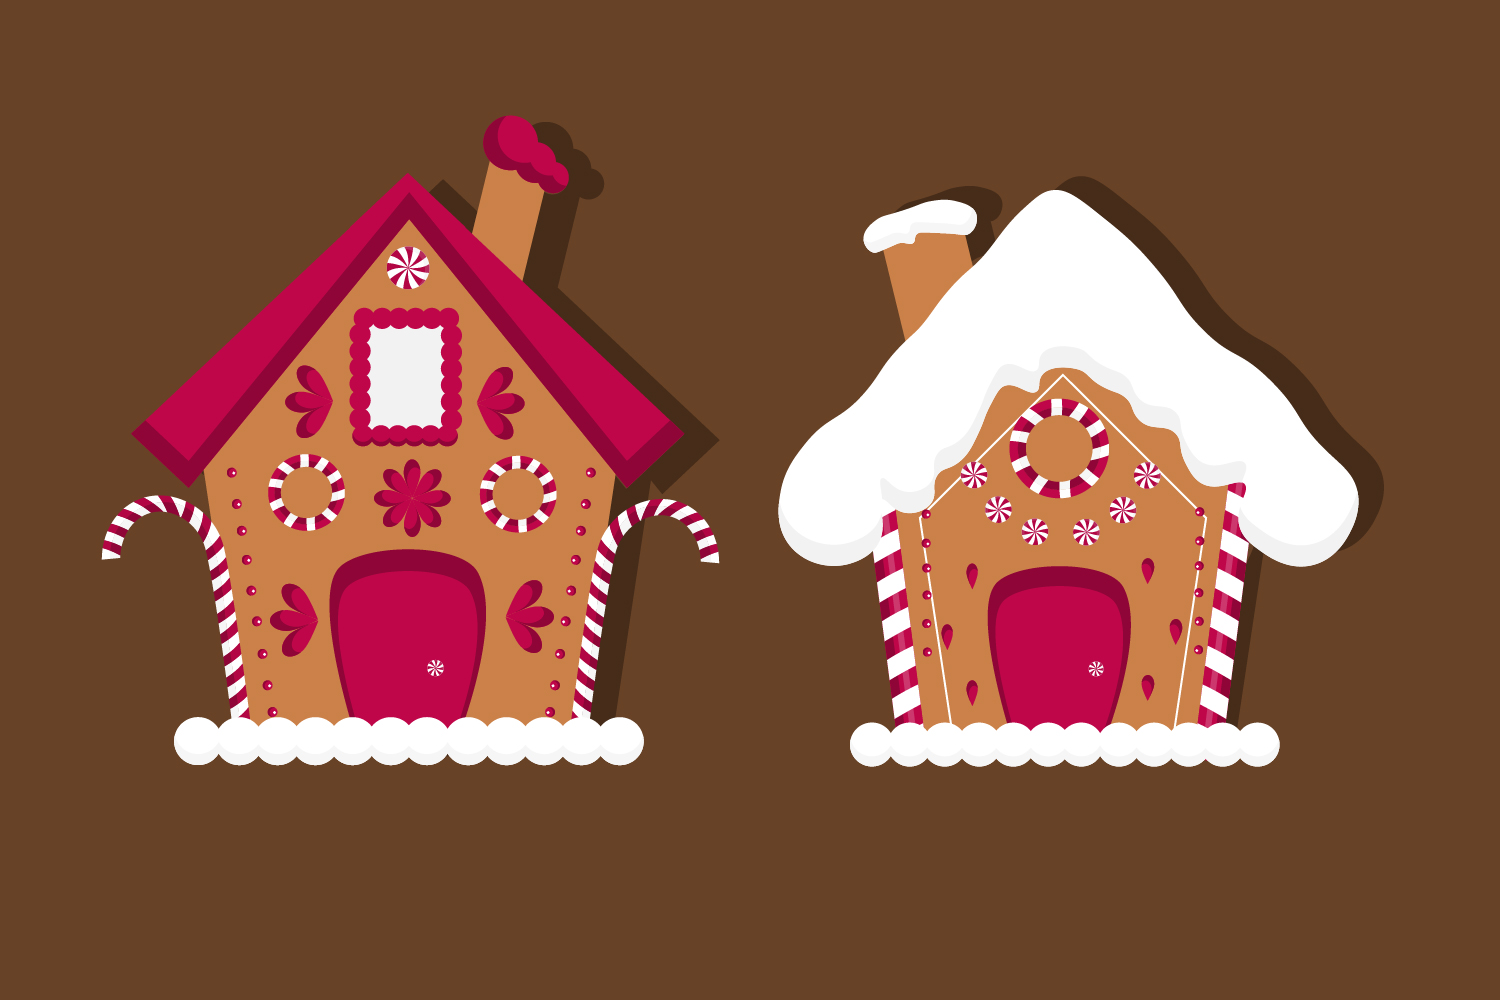 Christmas gingerbread house clipart, christmas example image 3